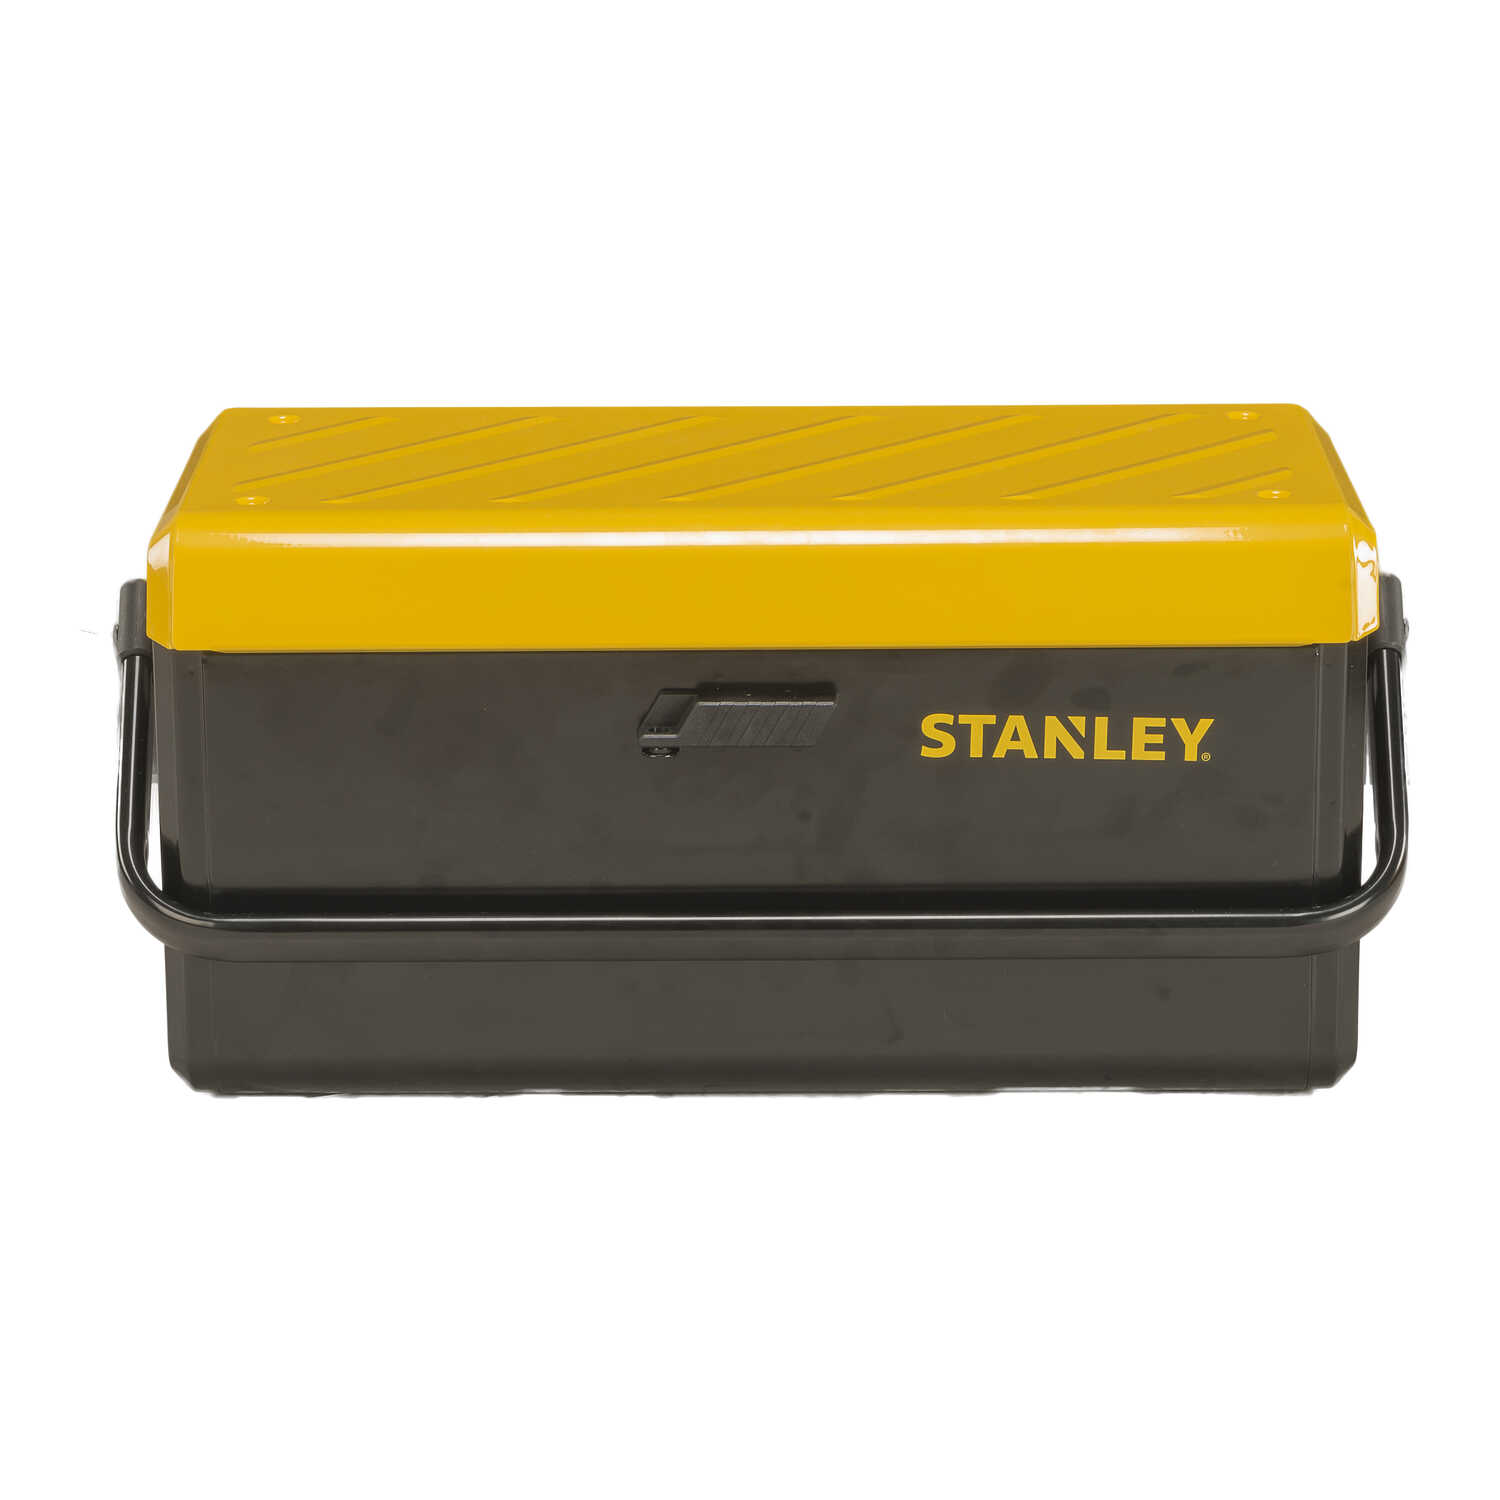 Stanley  11 in. W x 12 in. H 21 in. Tool Box  Metal  Black